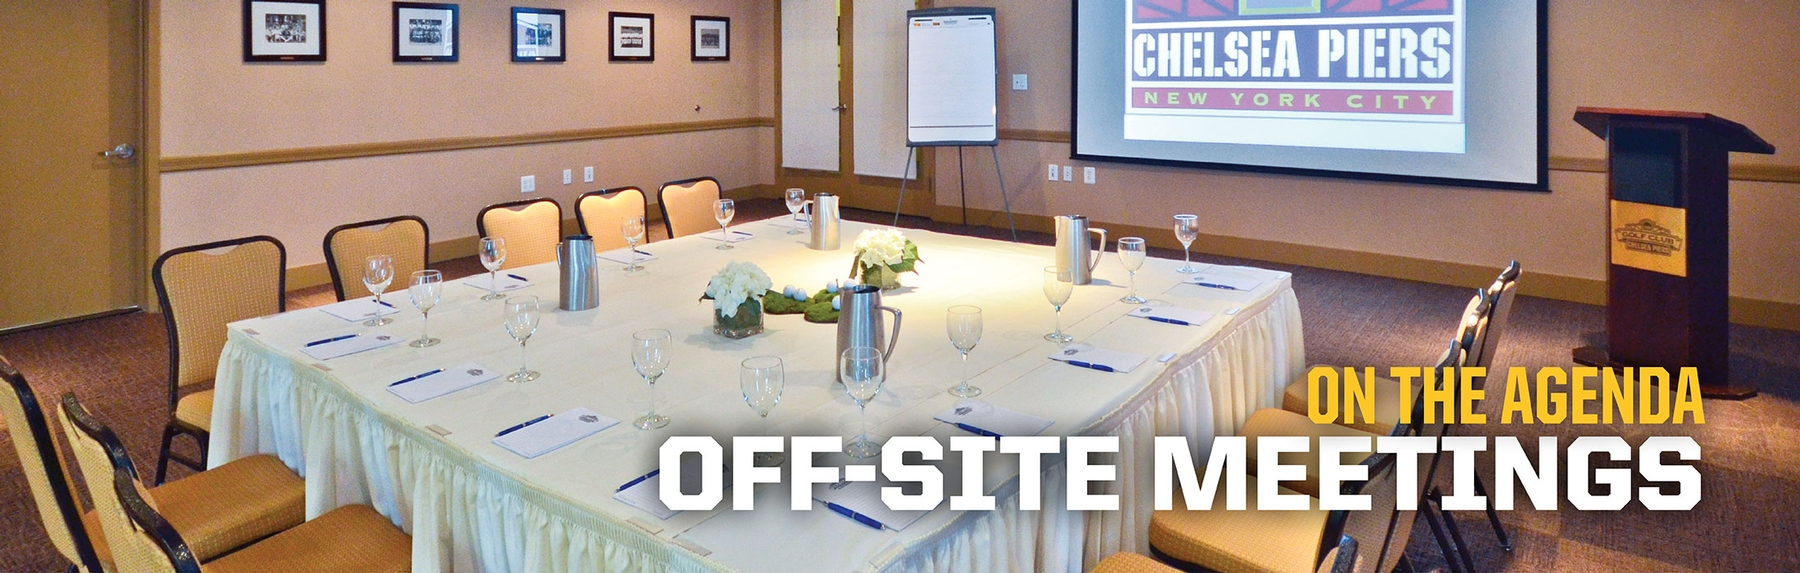 Offi-site Meetings